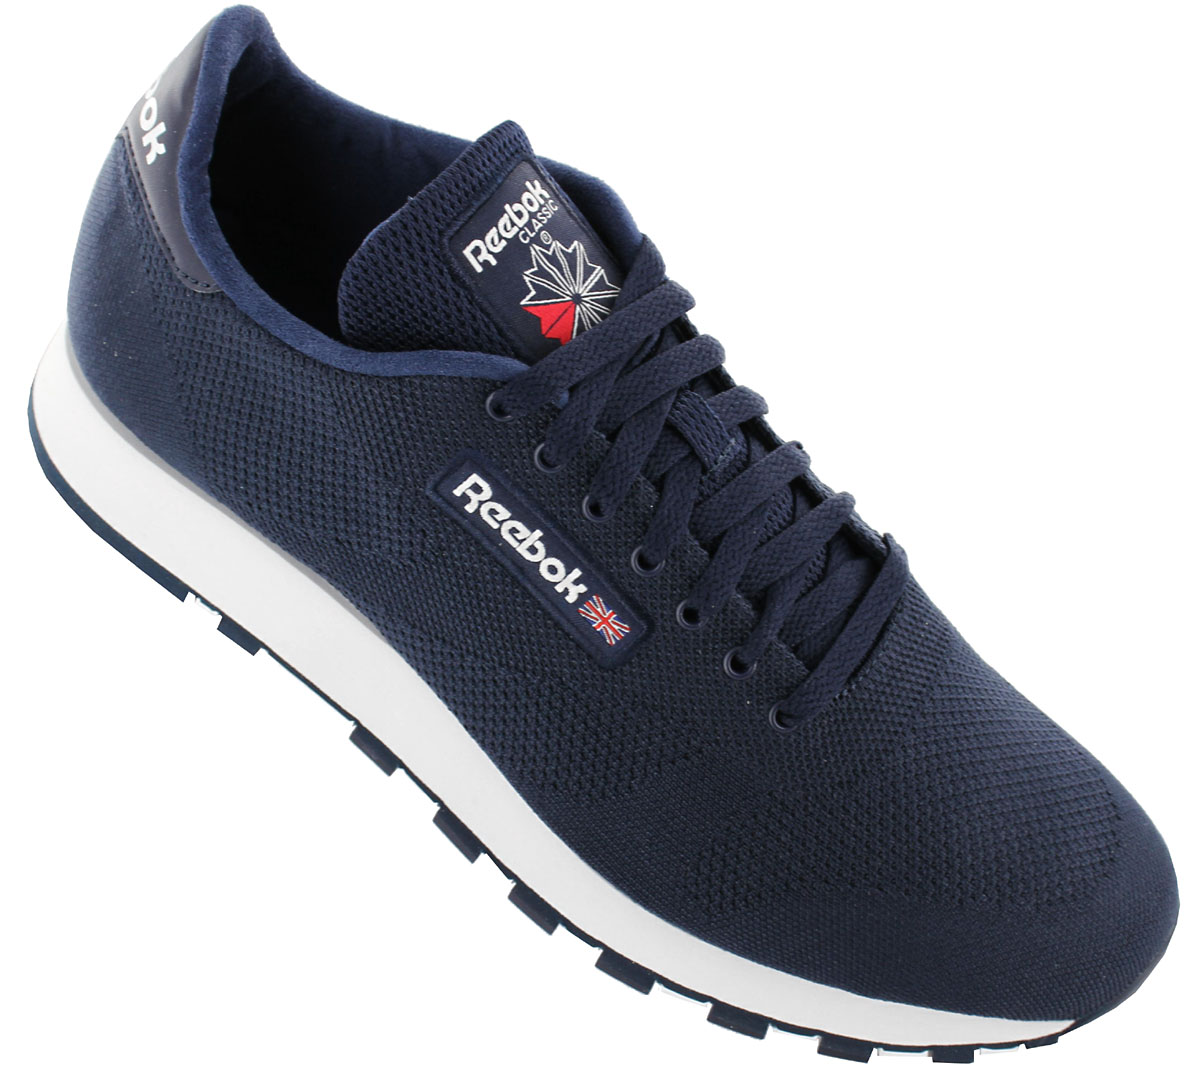 935615d18275d Reebok Classic Leather Ultk Ultraknit Men s Sneakers Shoes Rbk Cl ...